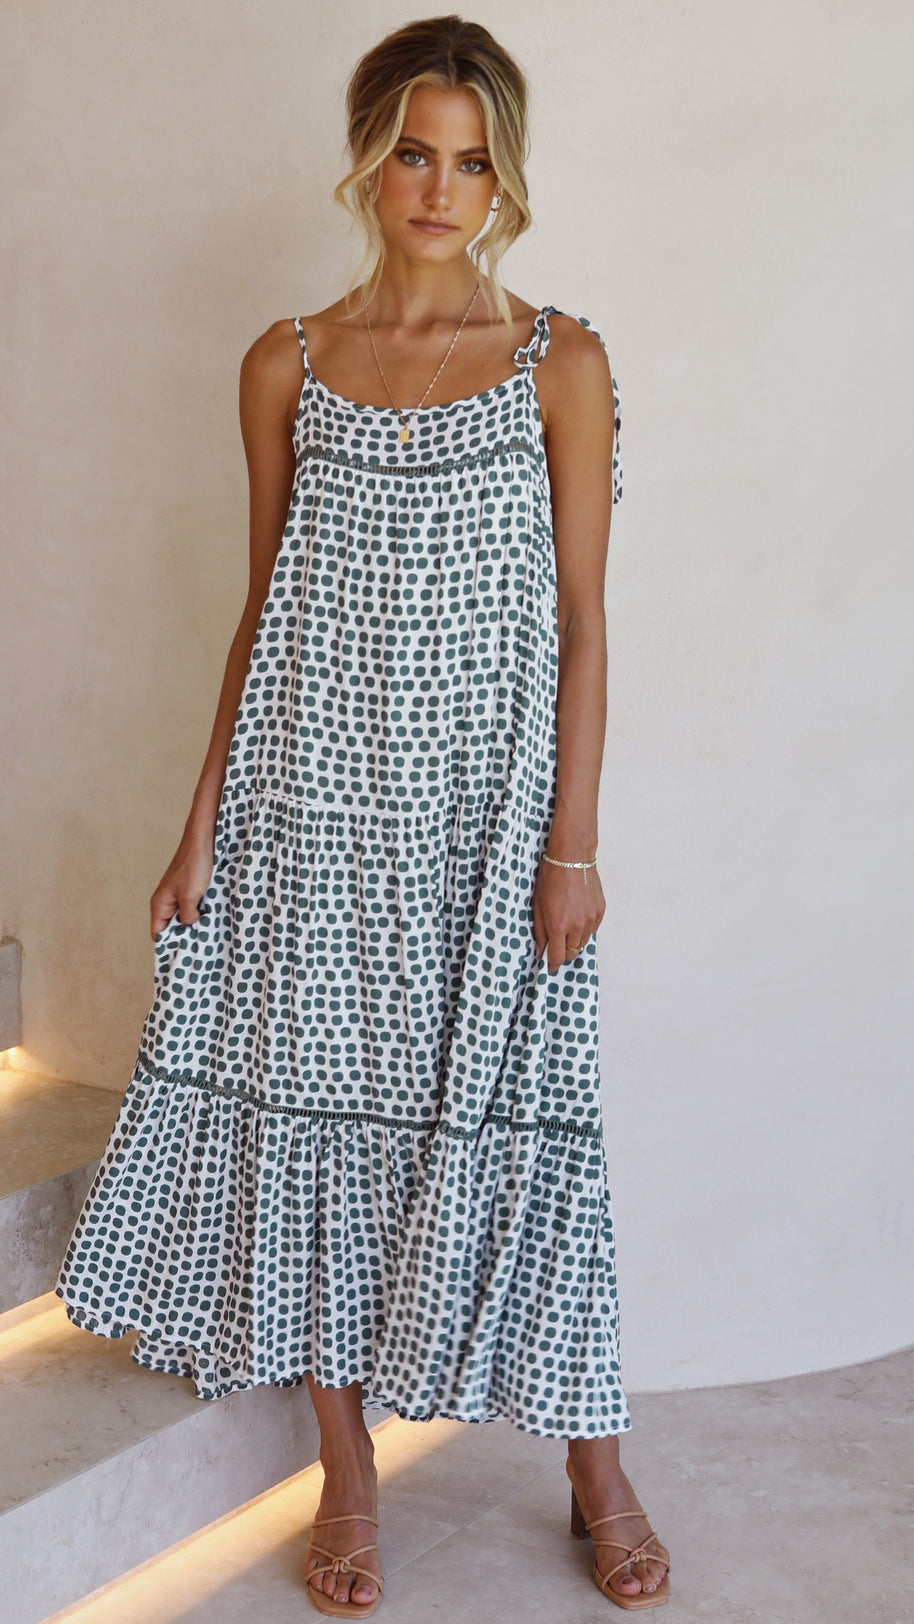 Journi Polka Dress - White/Green